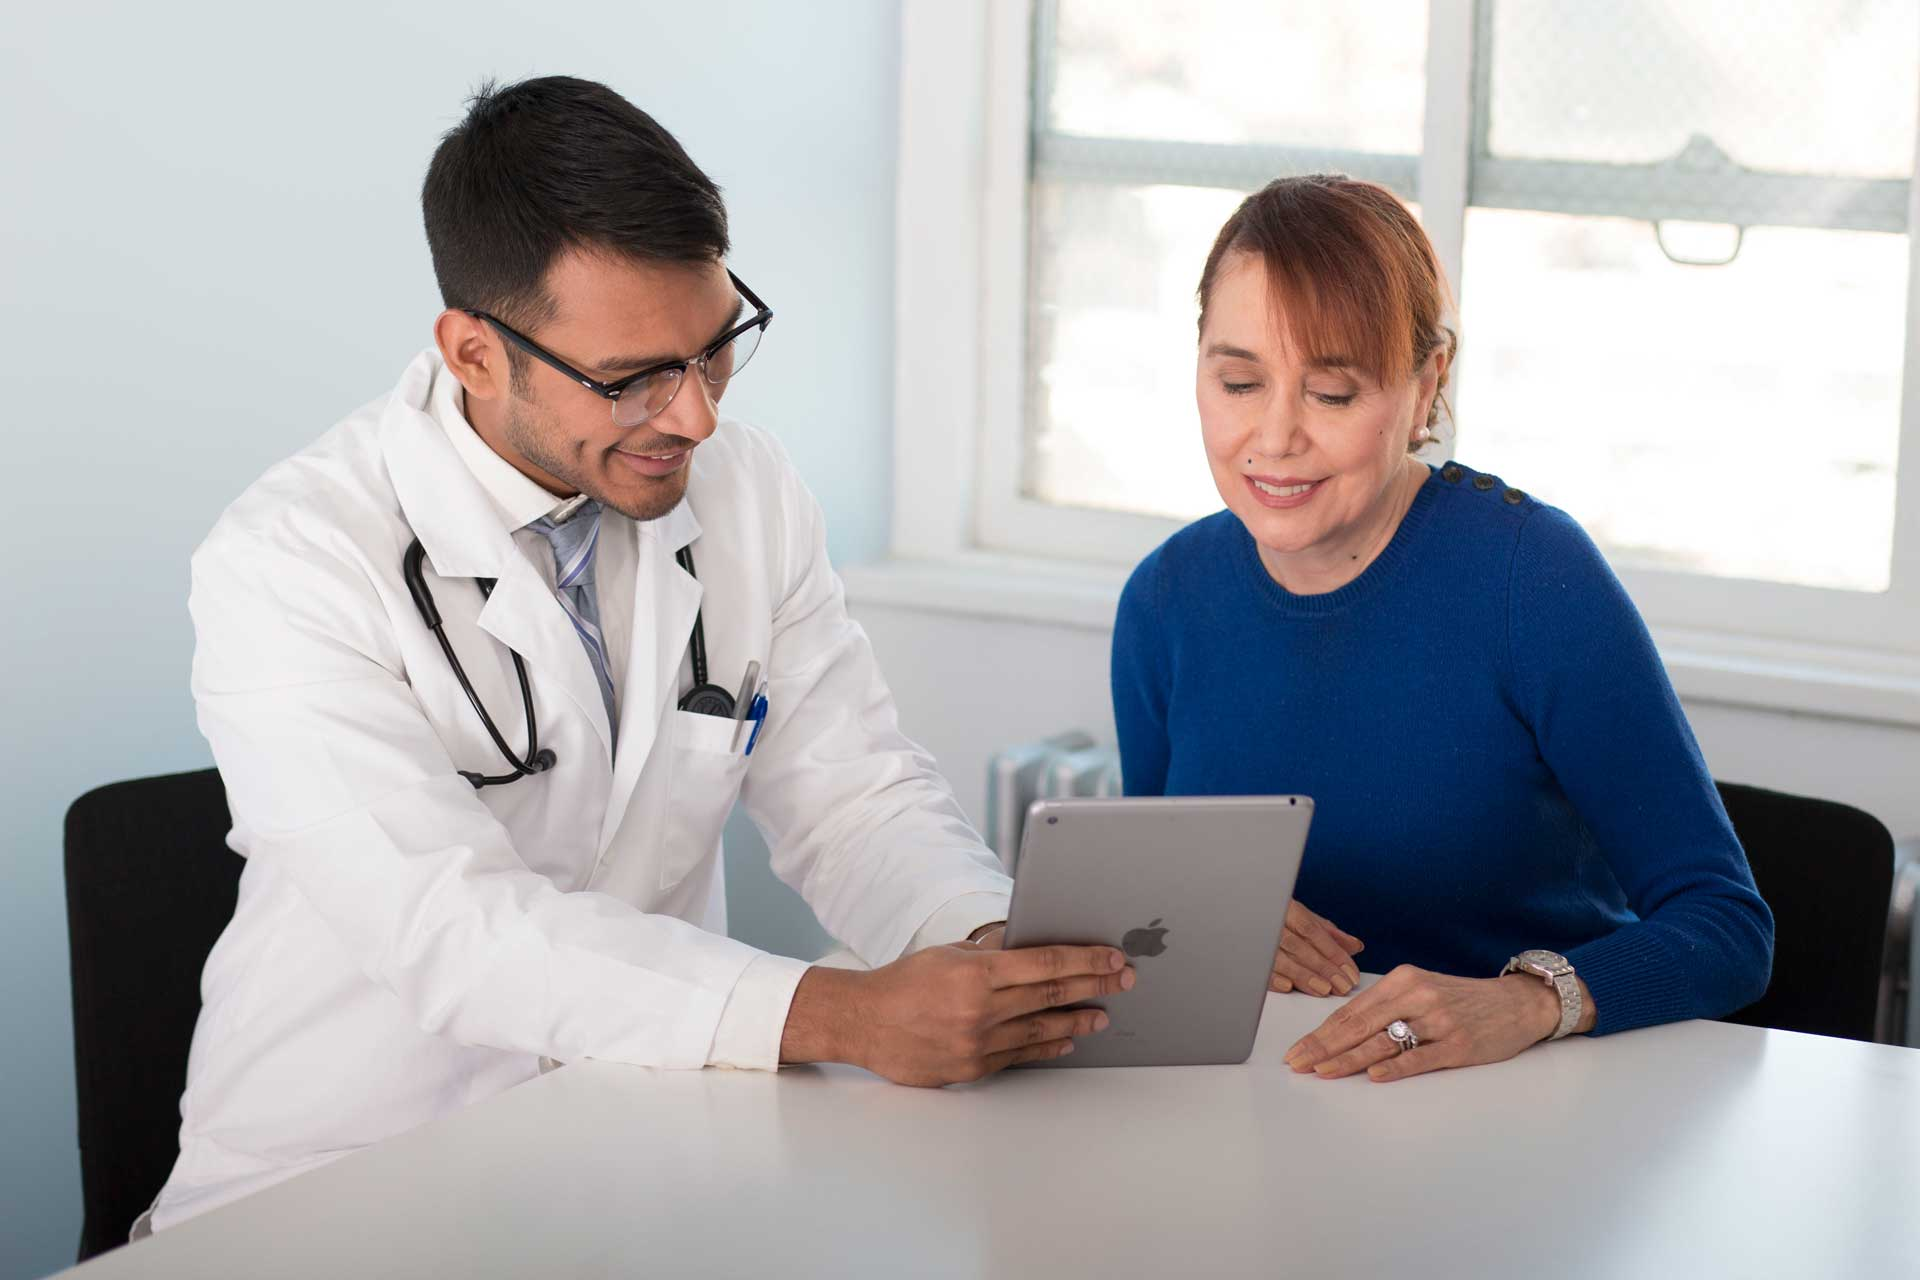 Physician-Patient Relationship: It's About the Patient